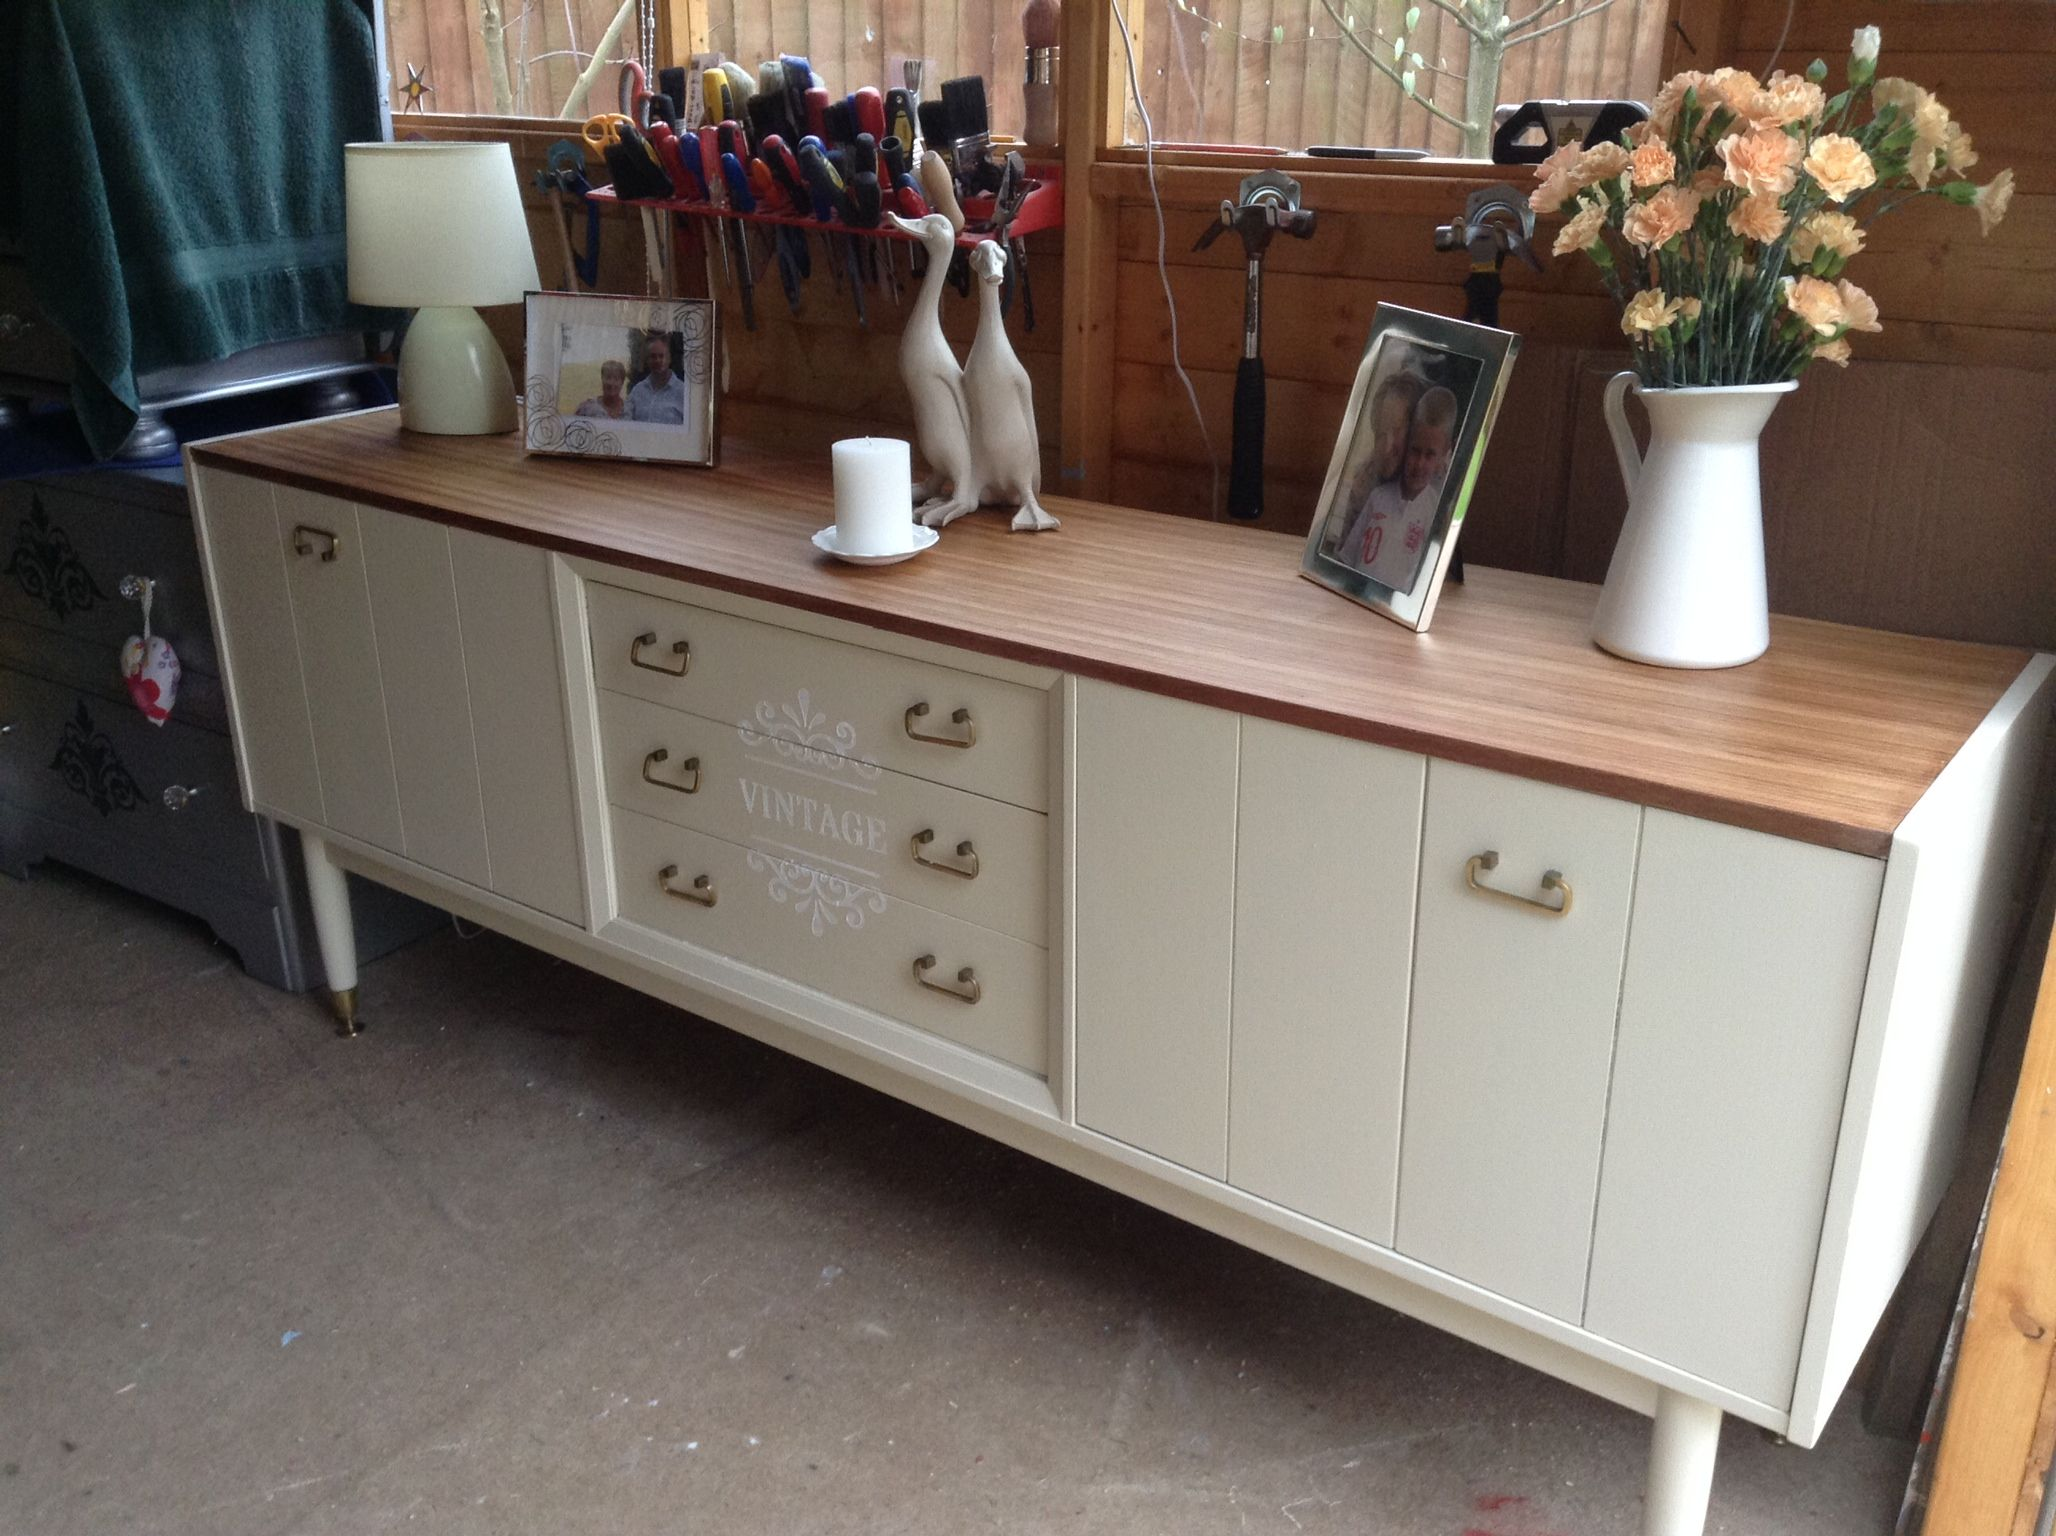 Explore Old Furniture, Furniture Ideas And More